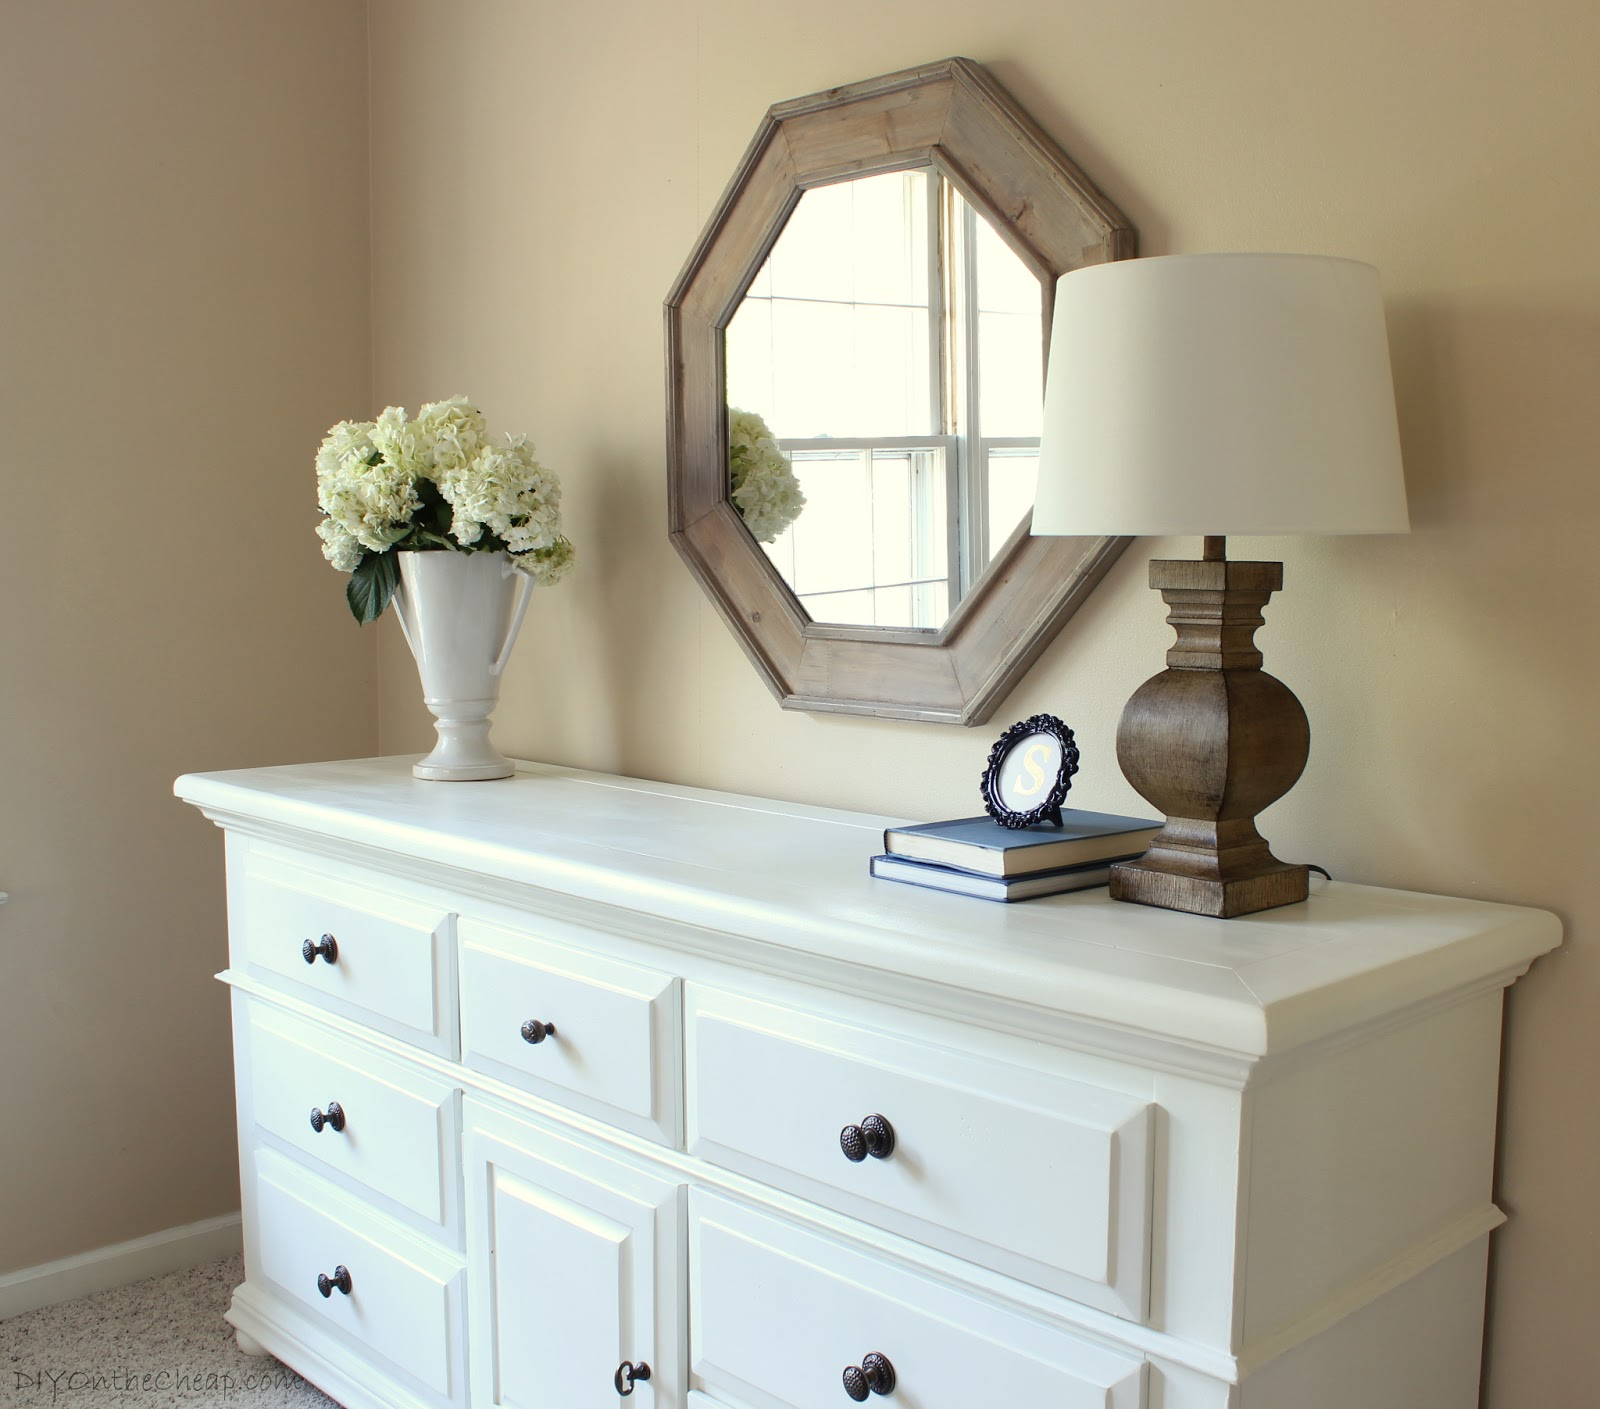 bedroom dresser makeover - erin spain